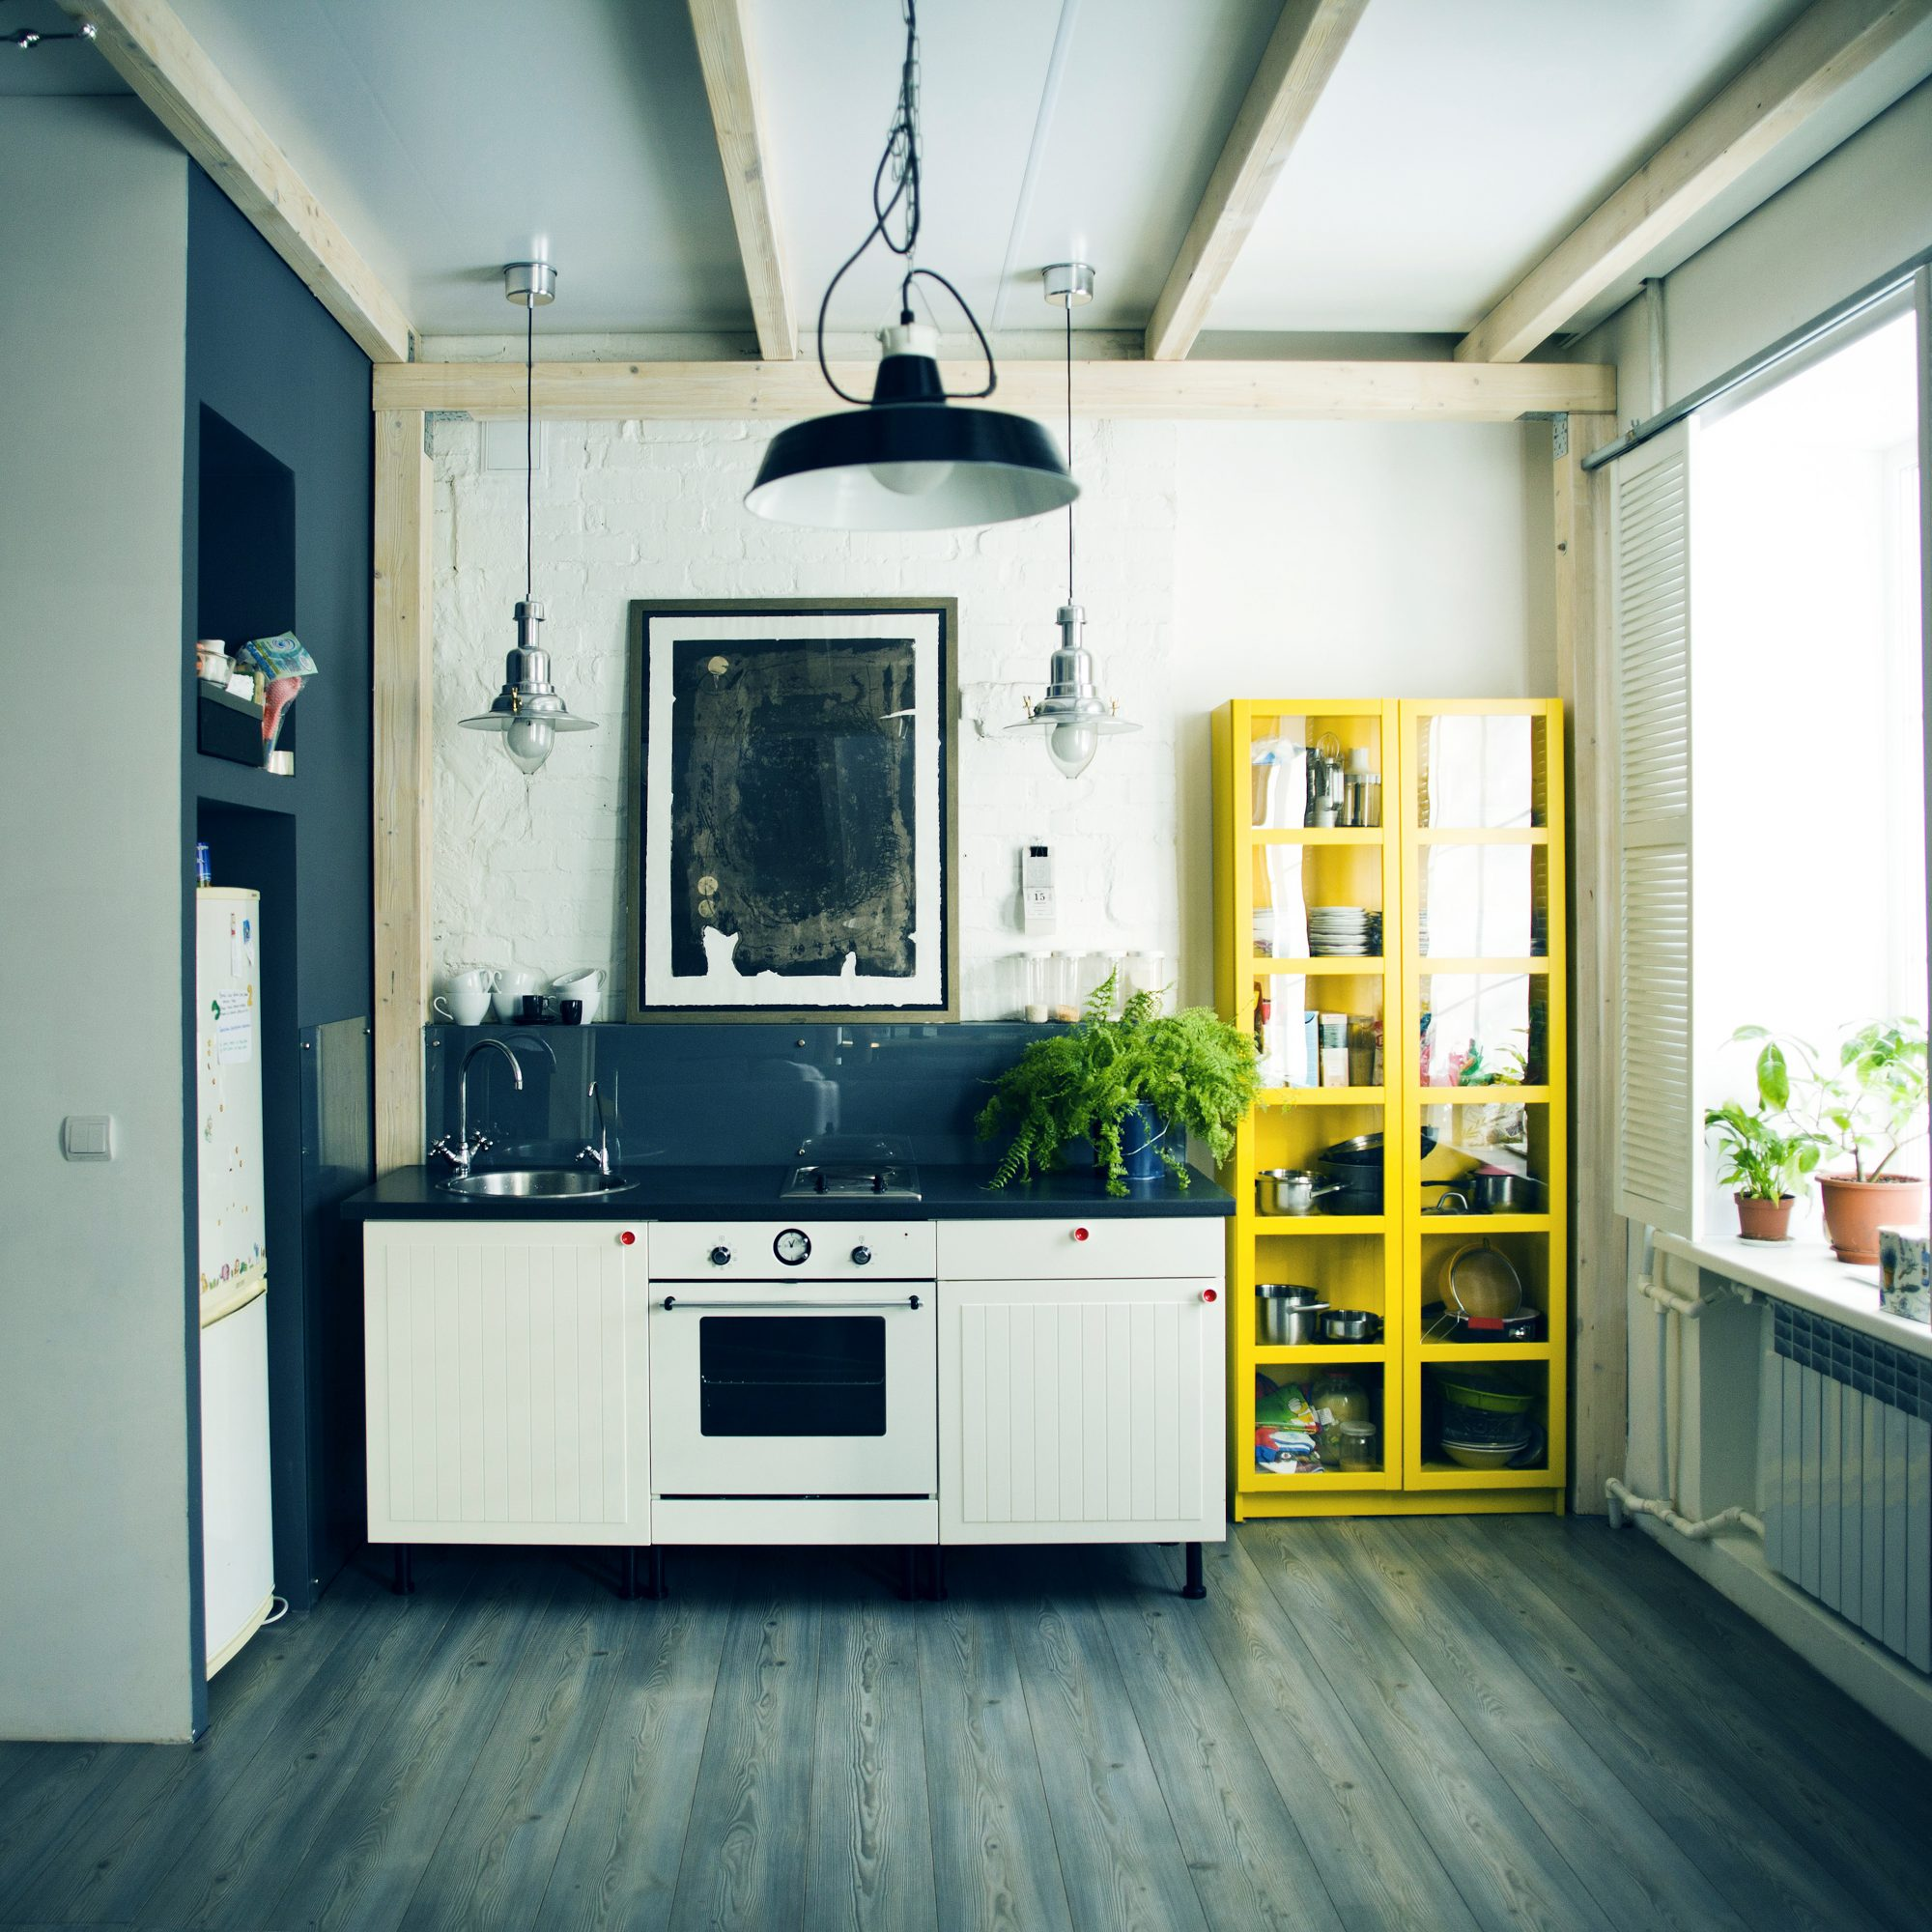 getty-apartmant-kitchen-image